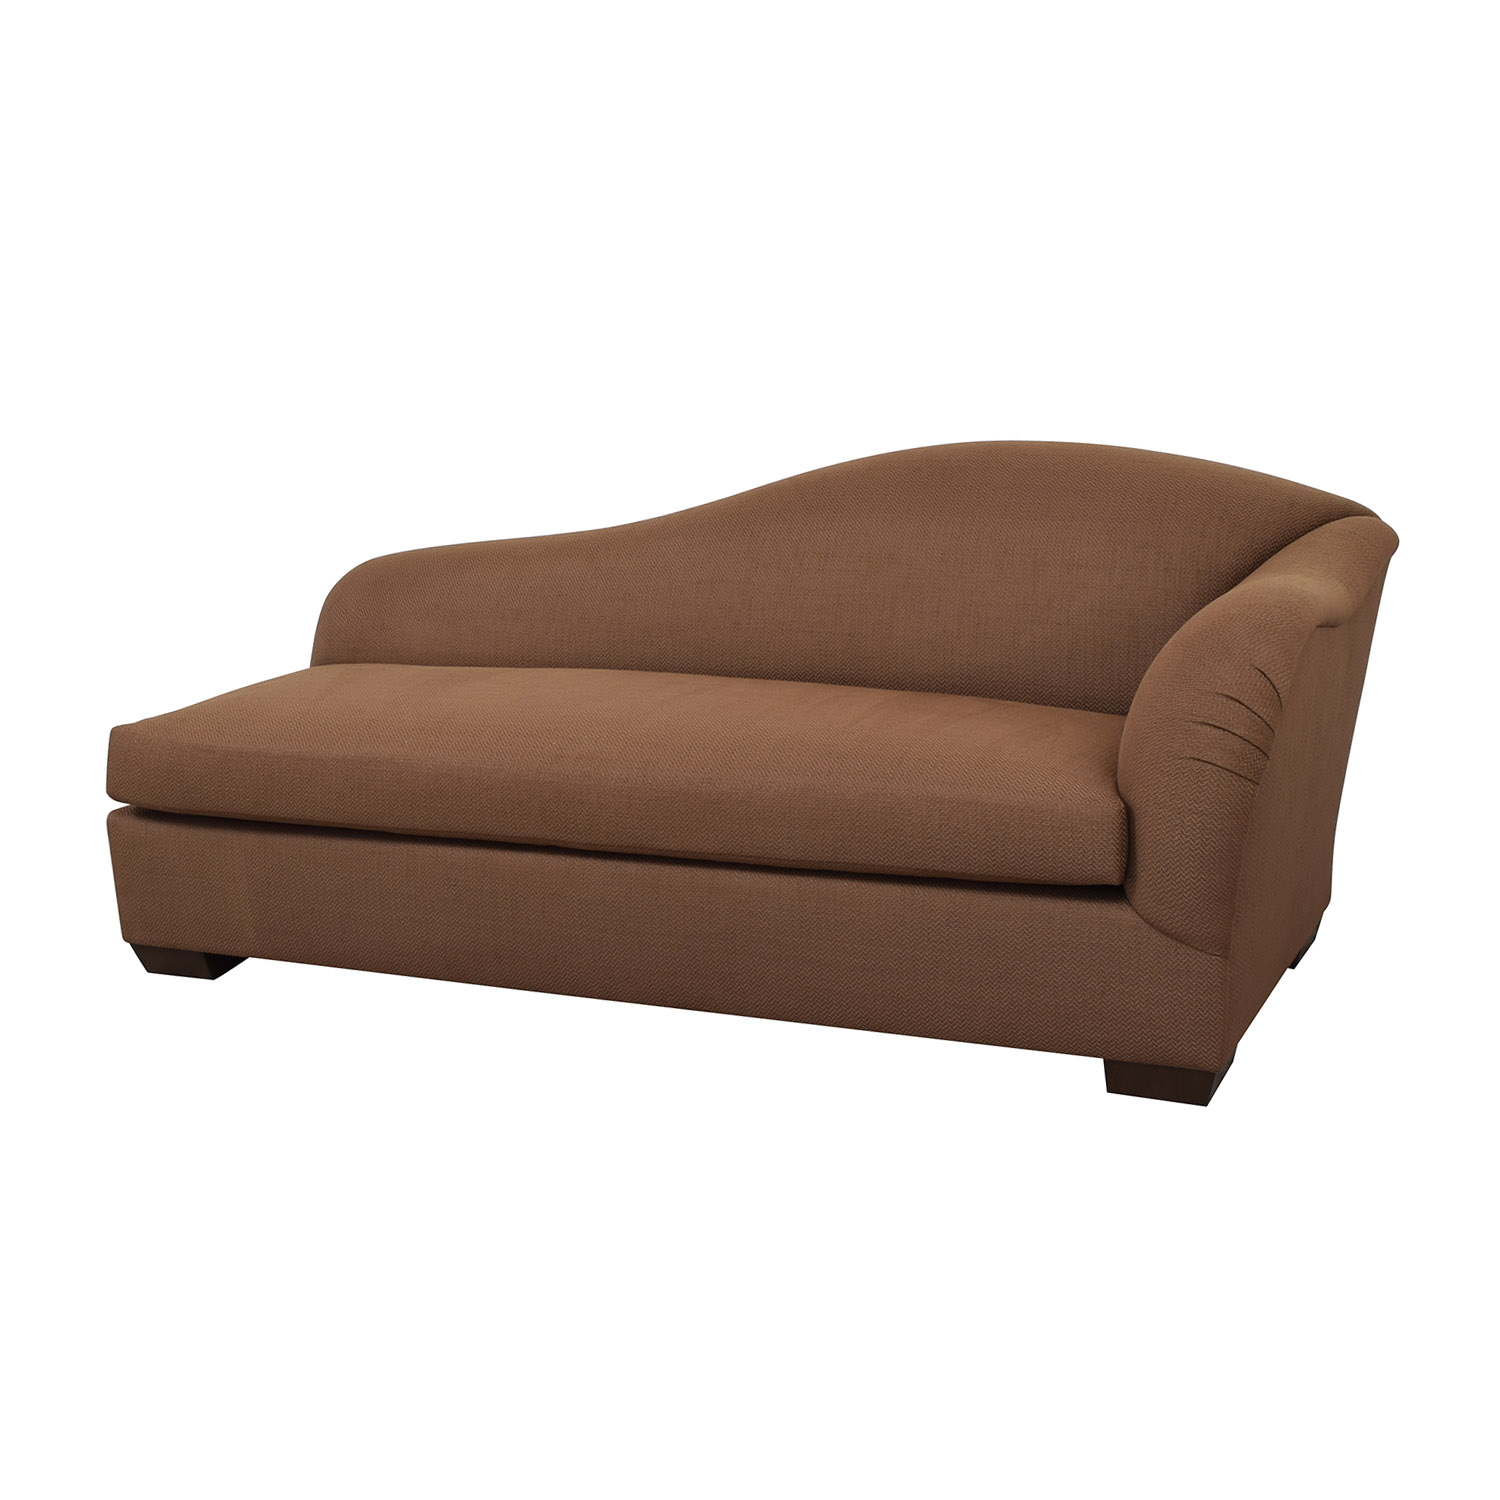 Furniture Masters Furniture Masters Brown Chaise Lounge